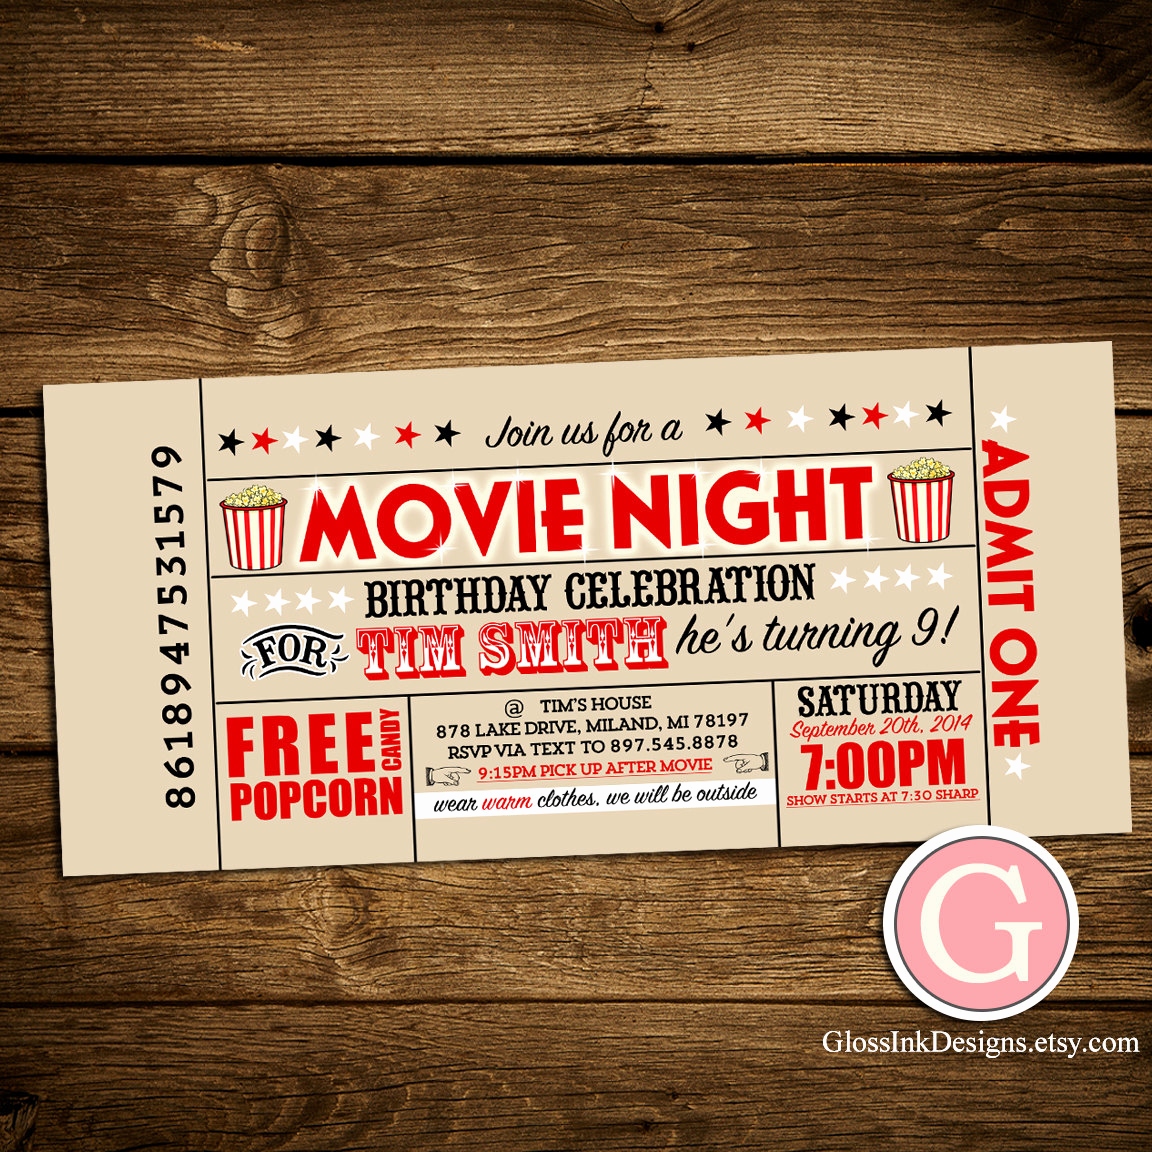 Movie Night Invitation Templates Best Of Movie Night Invitation Vintage Ticket Style by Glossinkdesigns